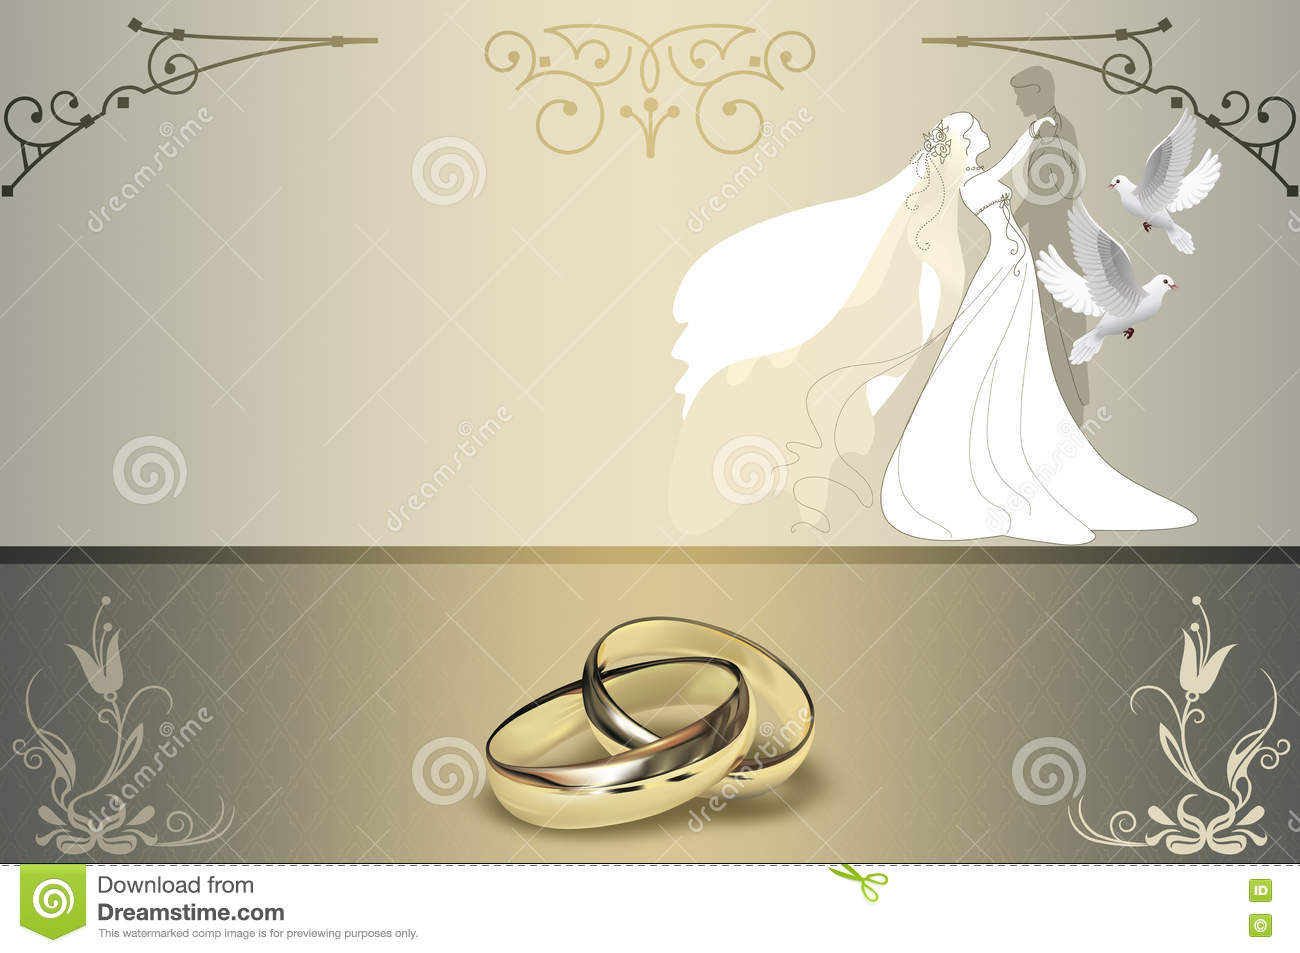 Free Wedding Invitation Background Designs: Wedding Invitation Card Design. Stock Illustration